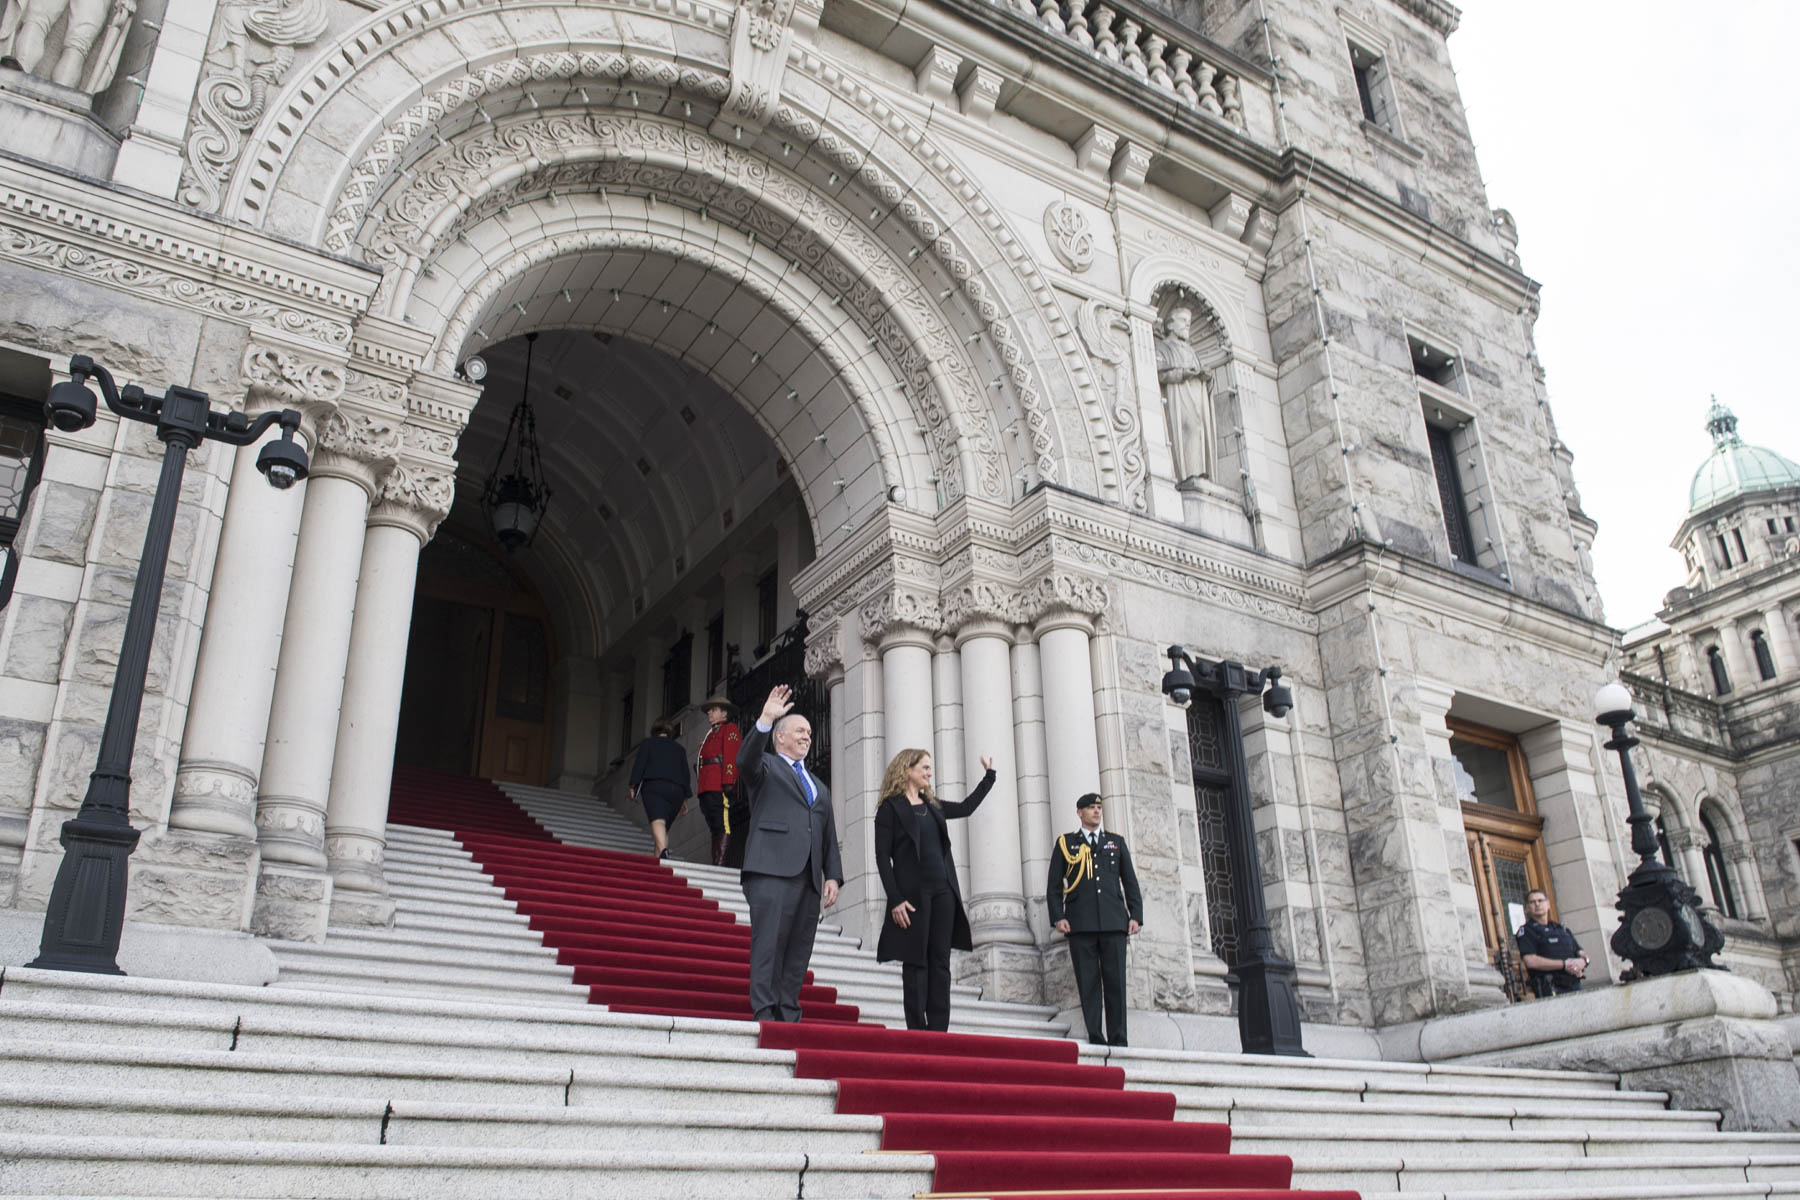 The Governor General and the Premier waved to the crowd from the steps of the Legislative Assembly of British Columbia.